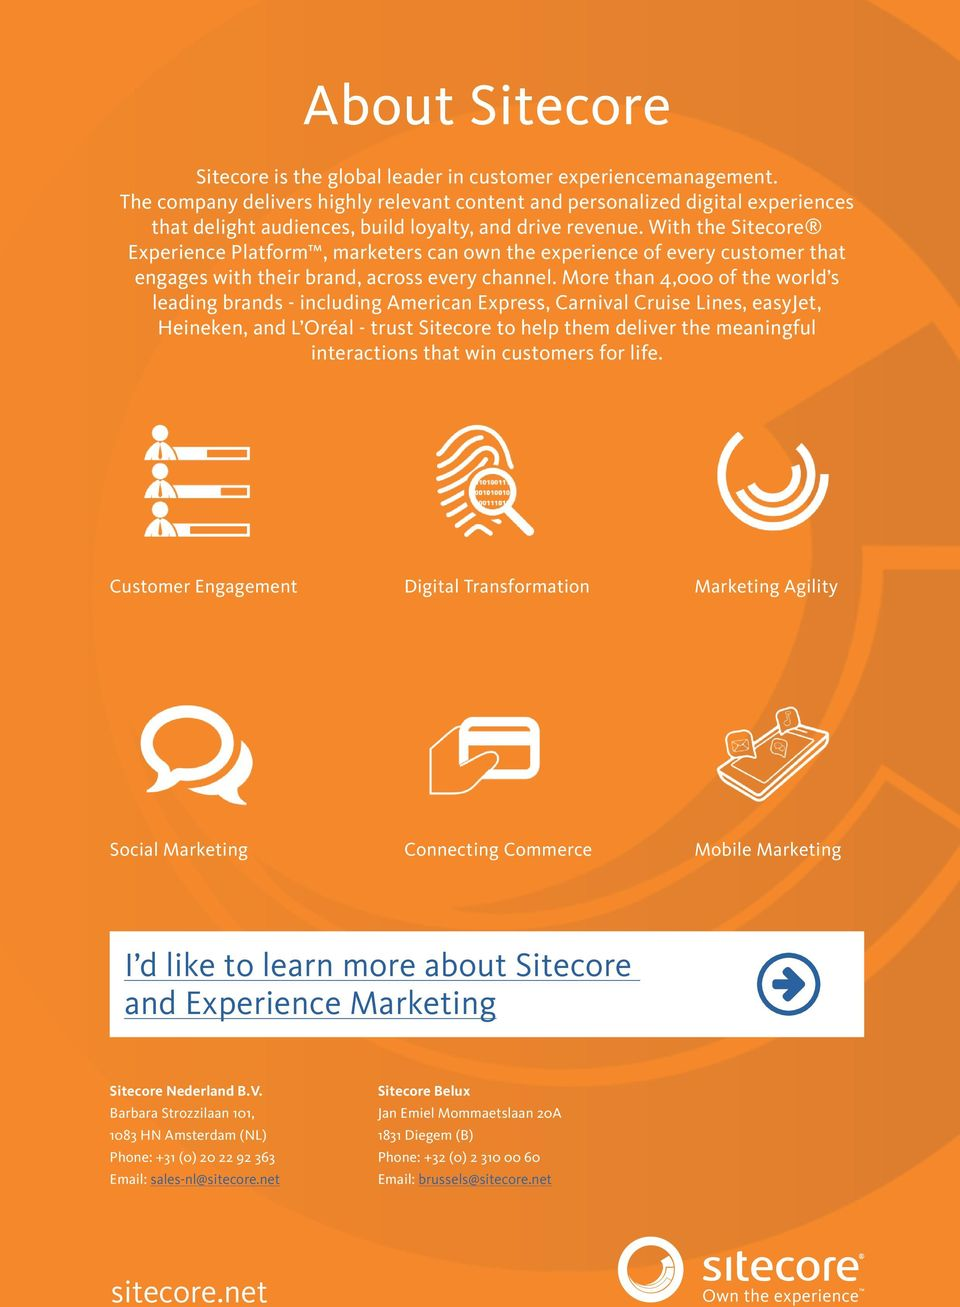 With the Sitecore Experience Platform, marketers can own the experience of every customer that engages with their brand, across every channel.